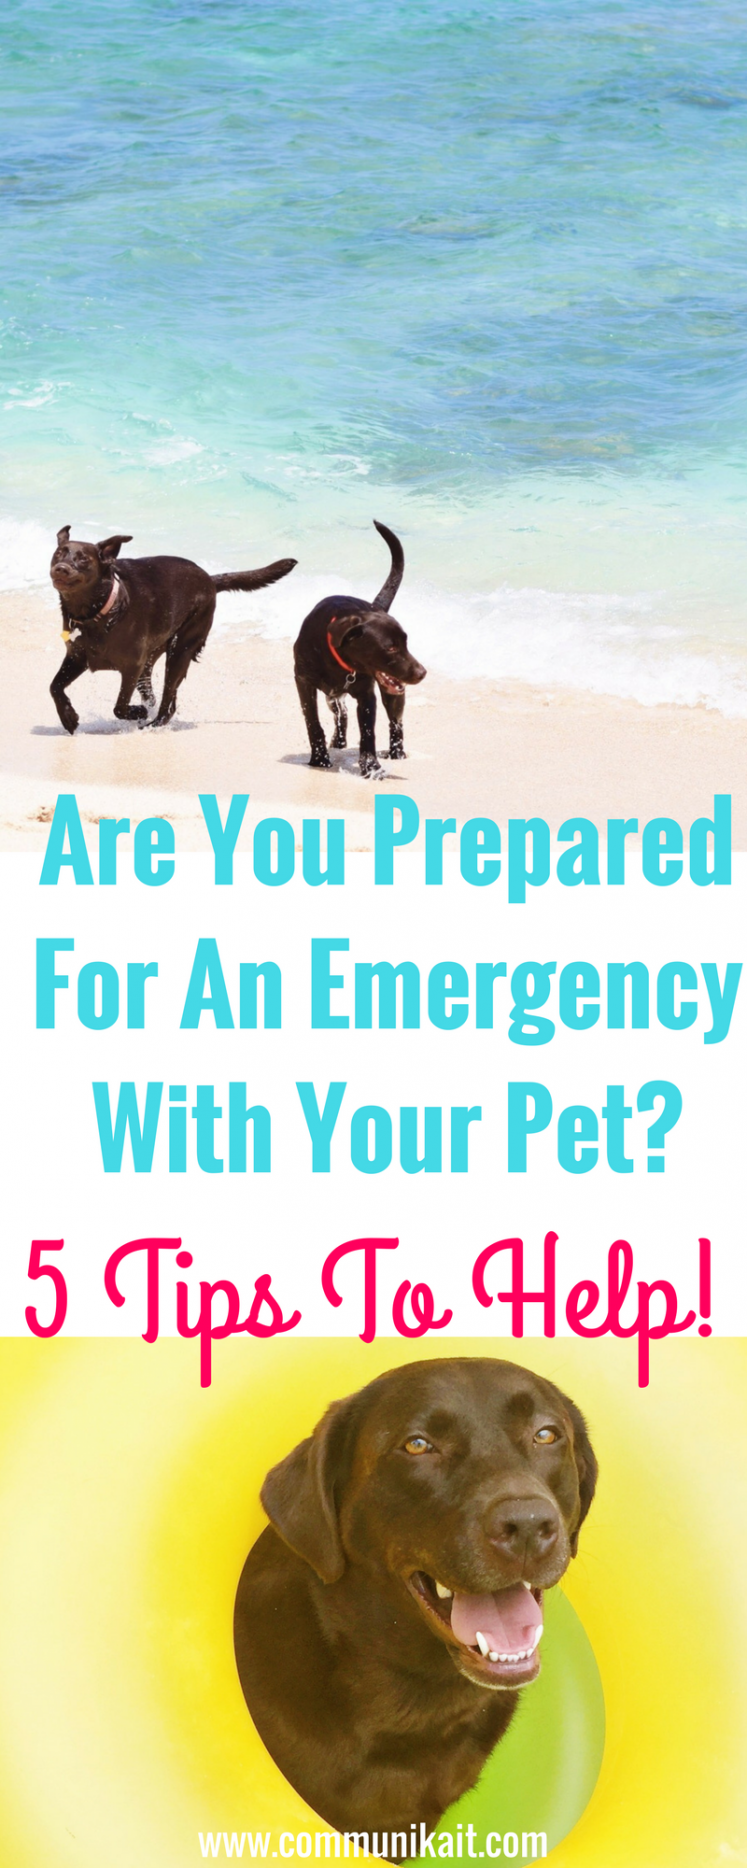 Are You Prepared For An Emergency With Your Pet?